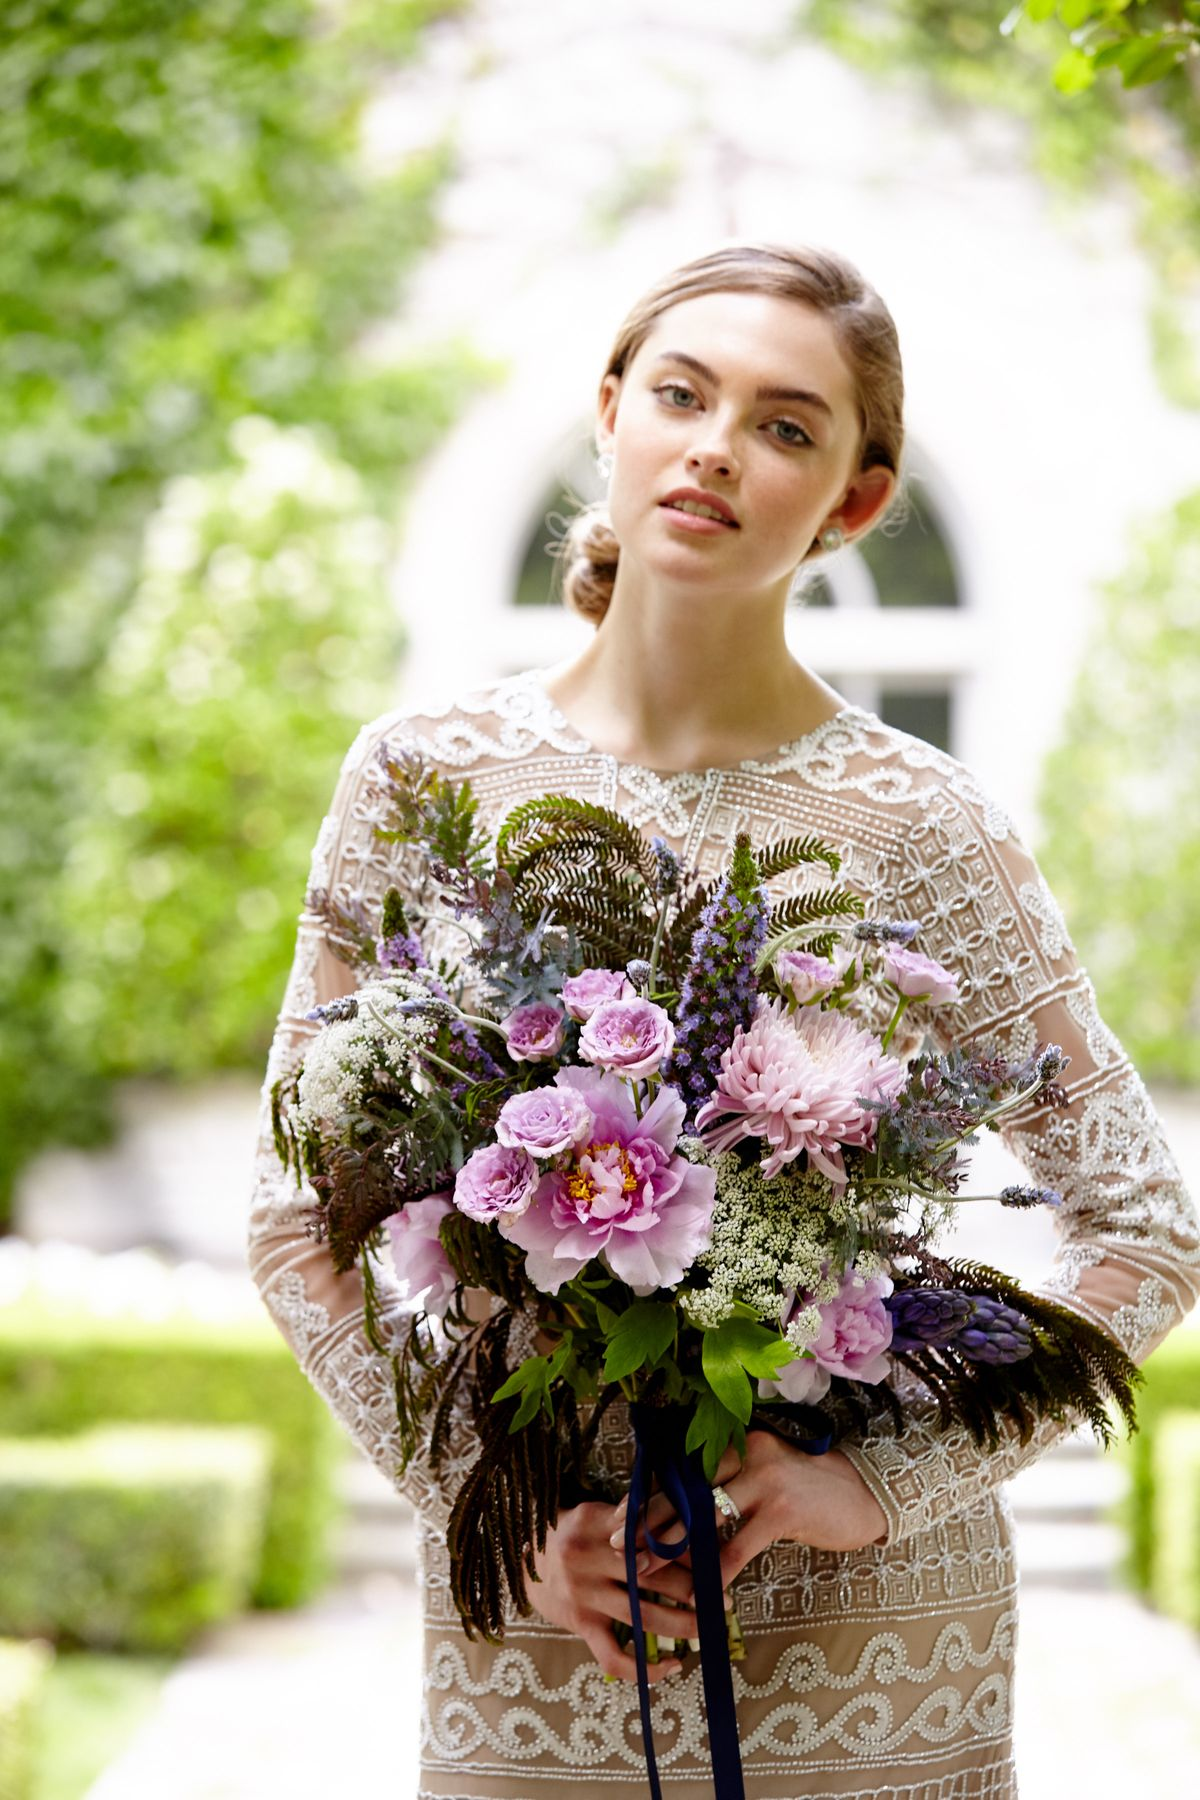 Dillards_Models_Bouquet 331.jpg